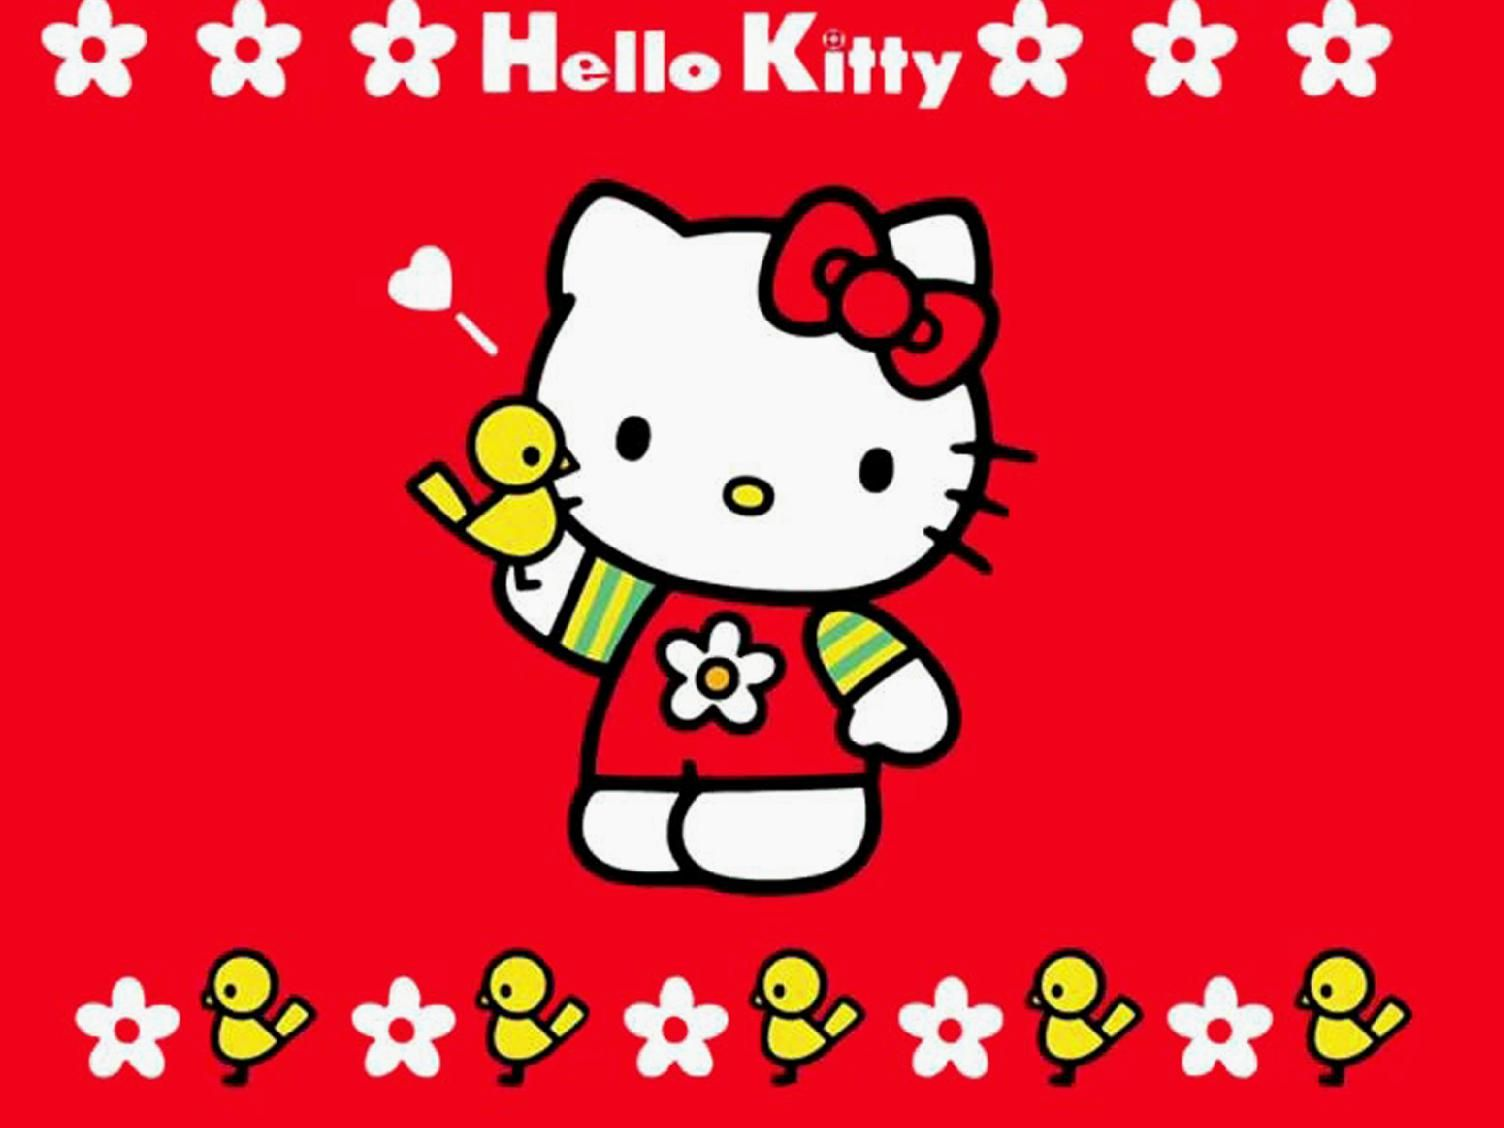 Image For Hello Kitty Wallpaper Hd Merah Lucu Yang Dipakai Hello